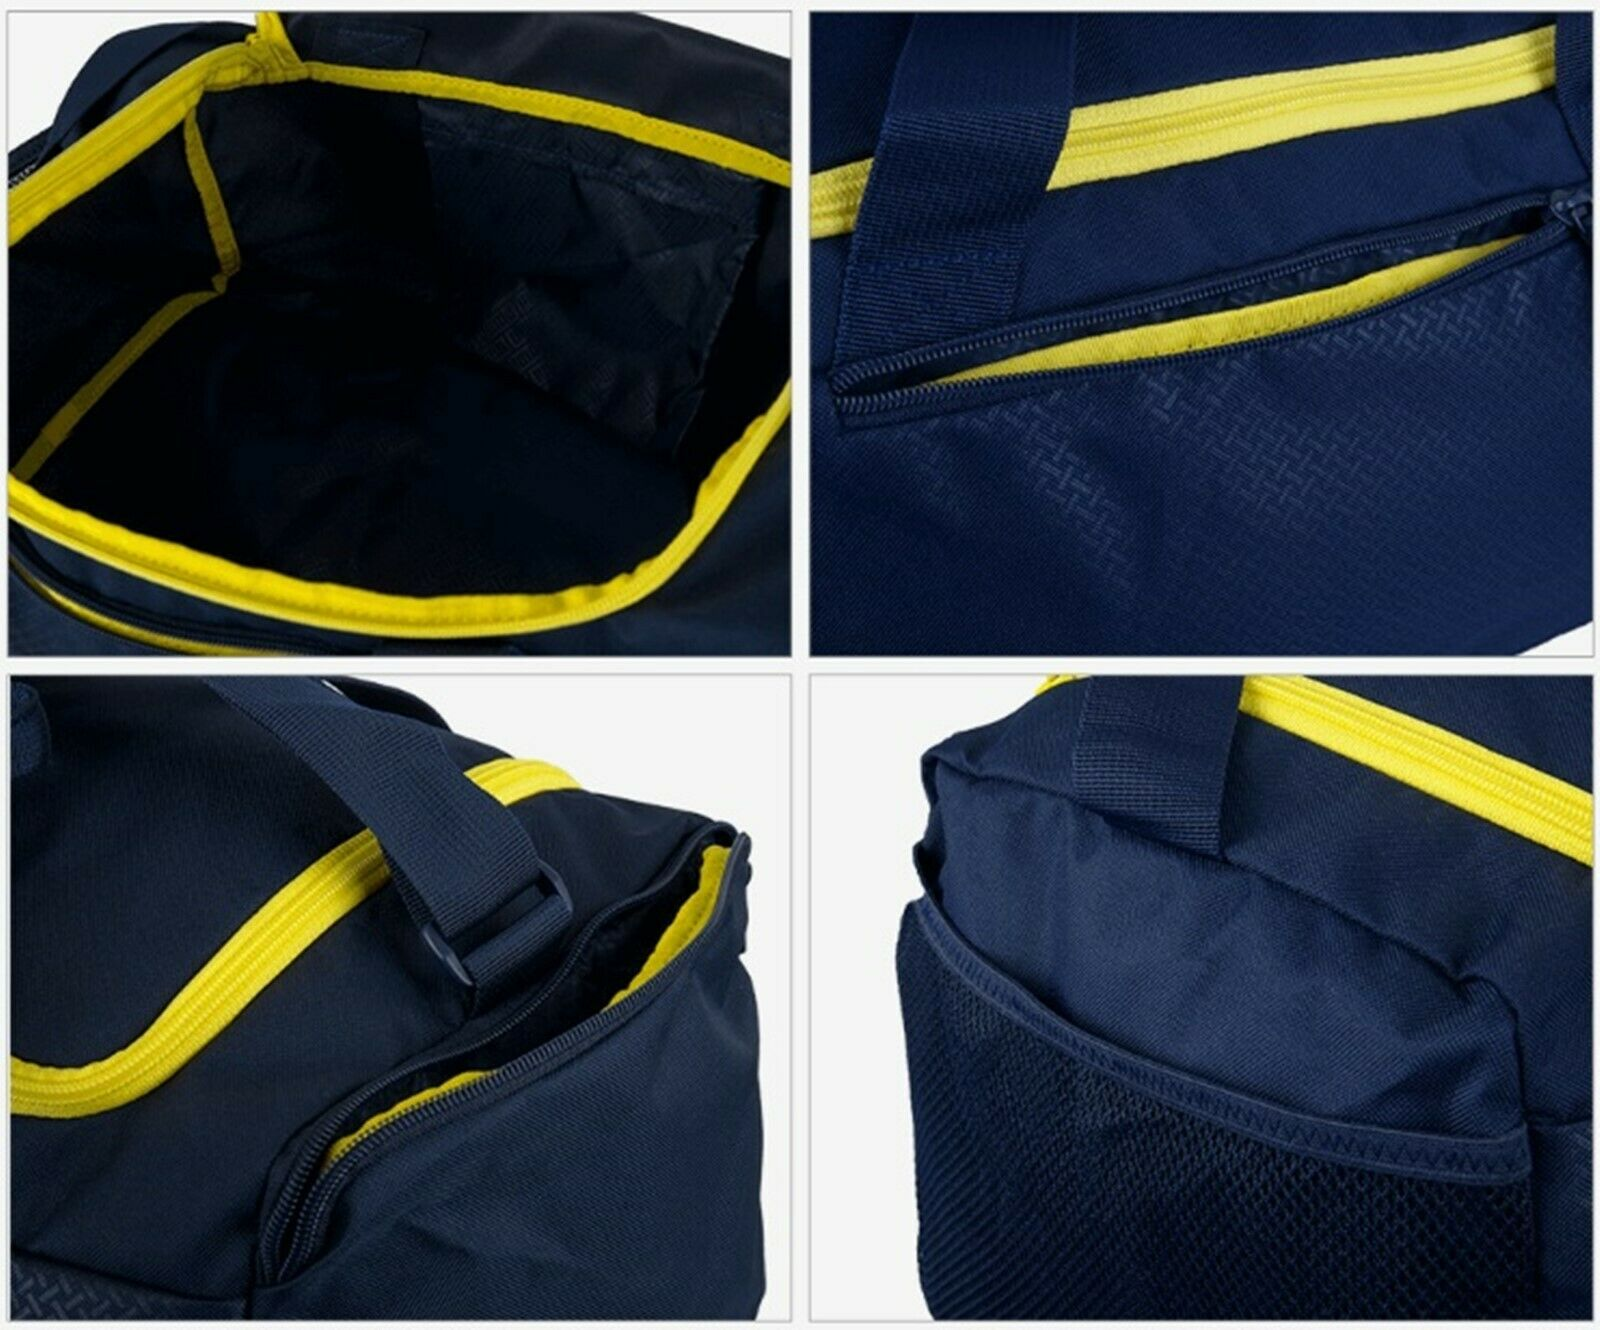 7ddf842c1 Puma Fundamental Small Training Duffel Bags Running Navy GYM Bag Sacks  07552706 | eBay